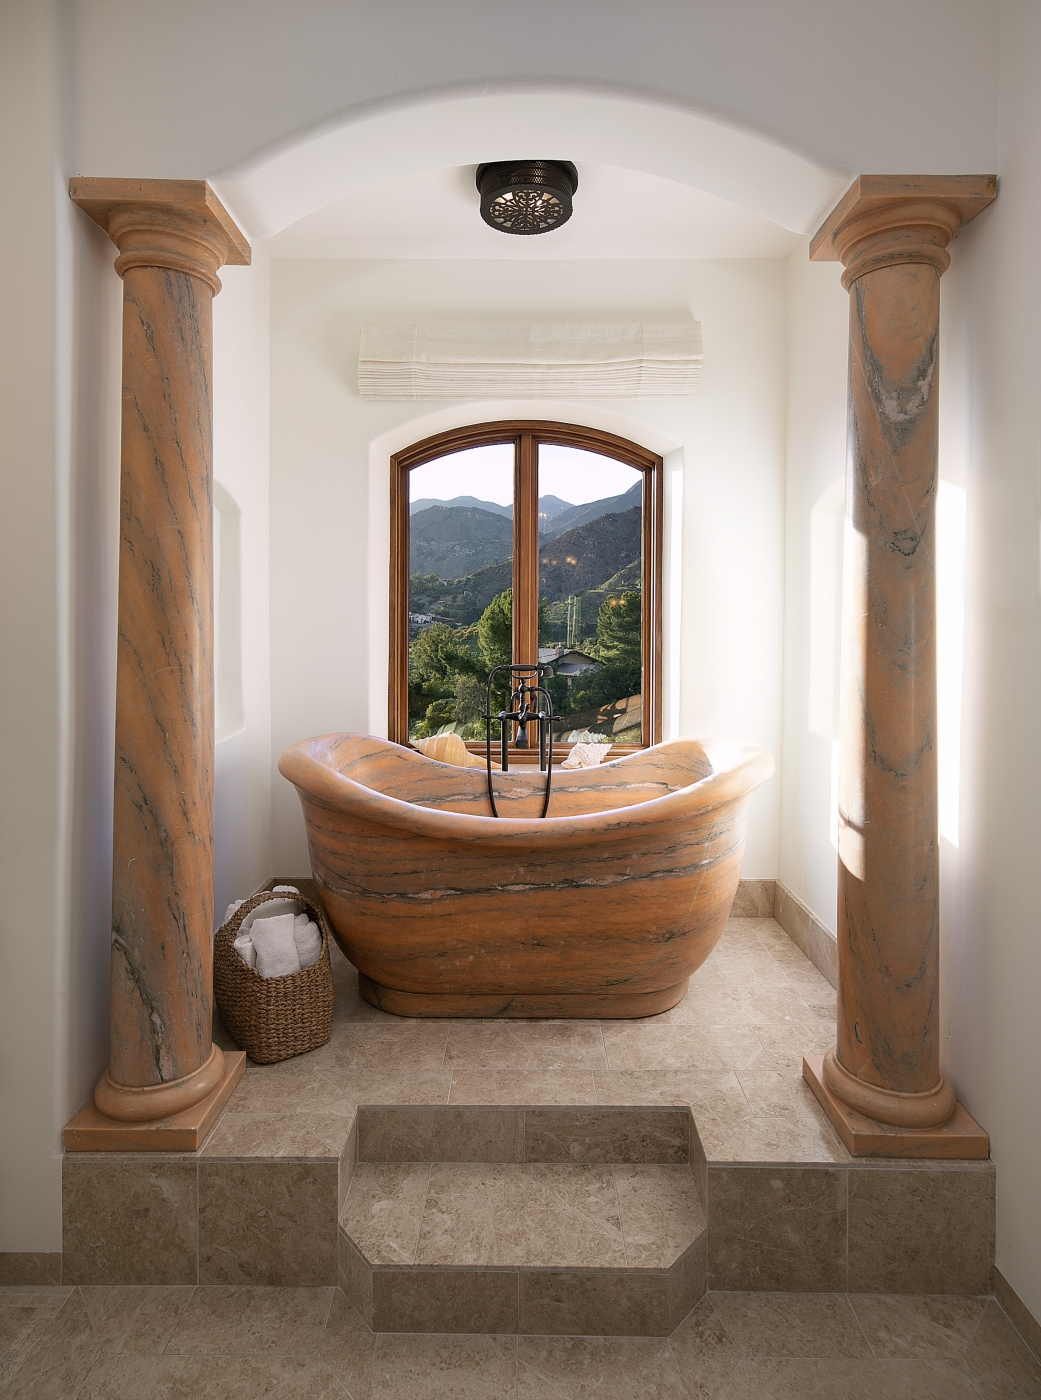 Luxurious Marble Bath with Mountain Views